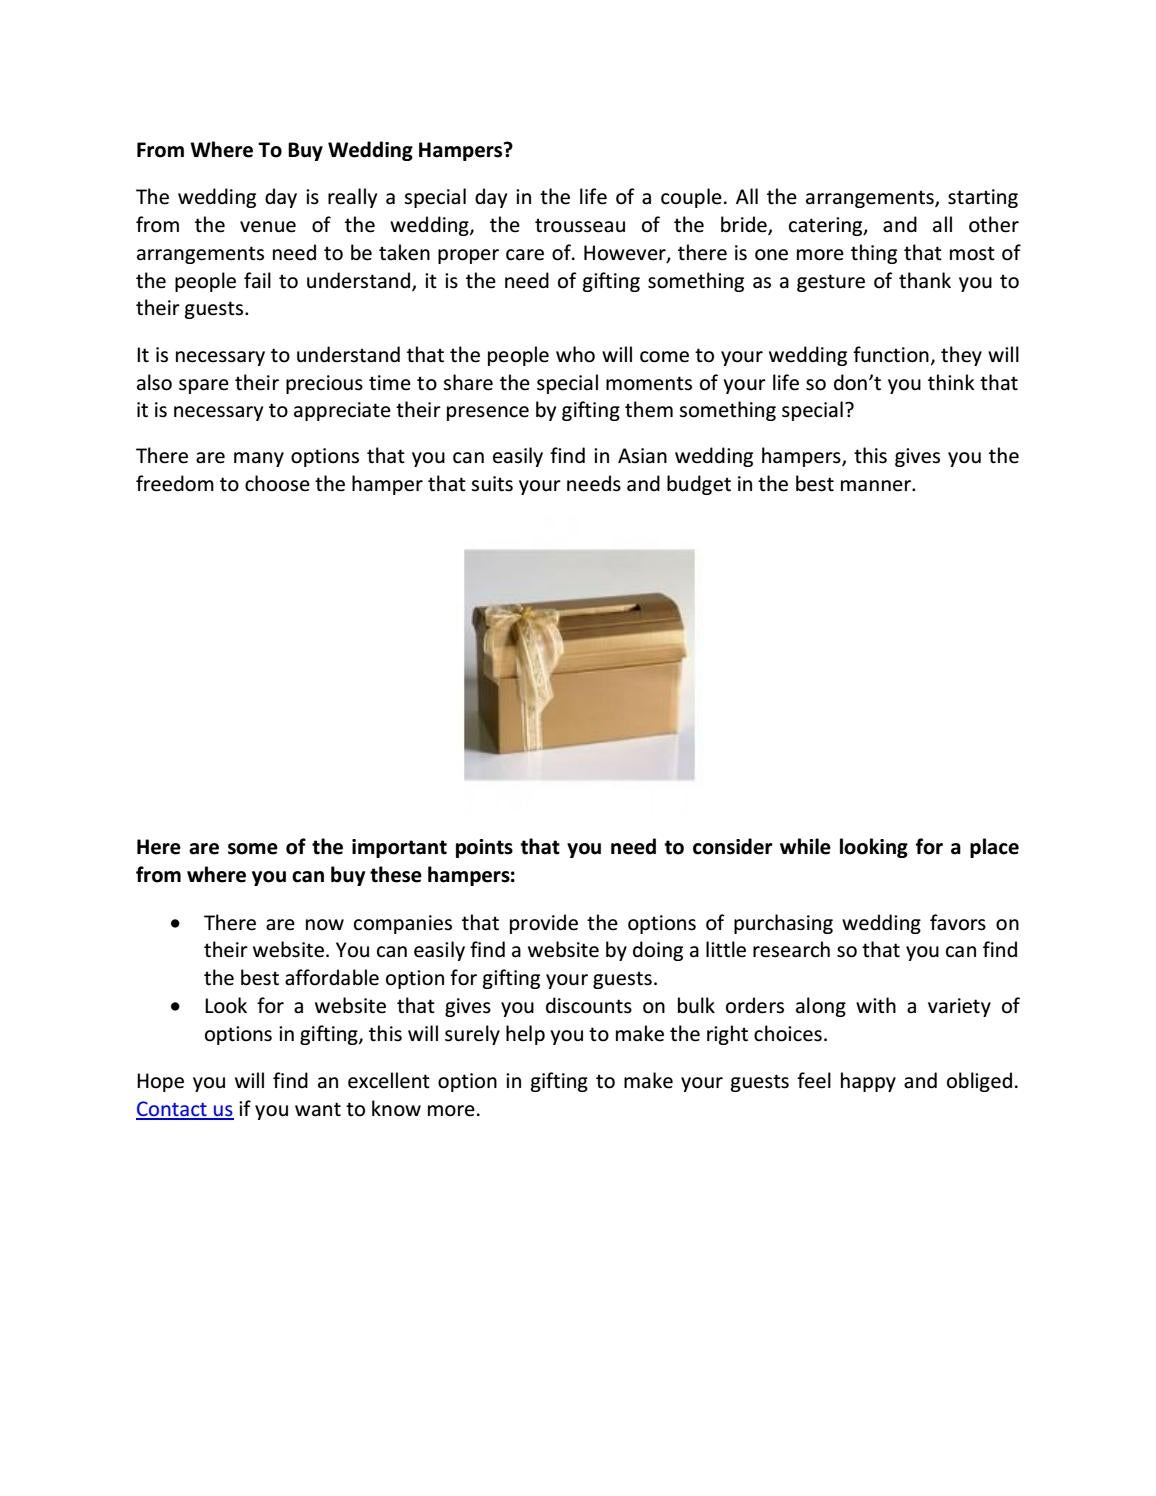 From where to buy wedding hampers by Nathaniel Perkins - issuu